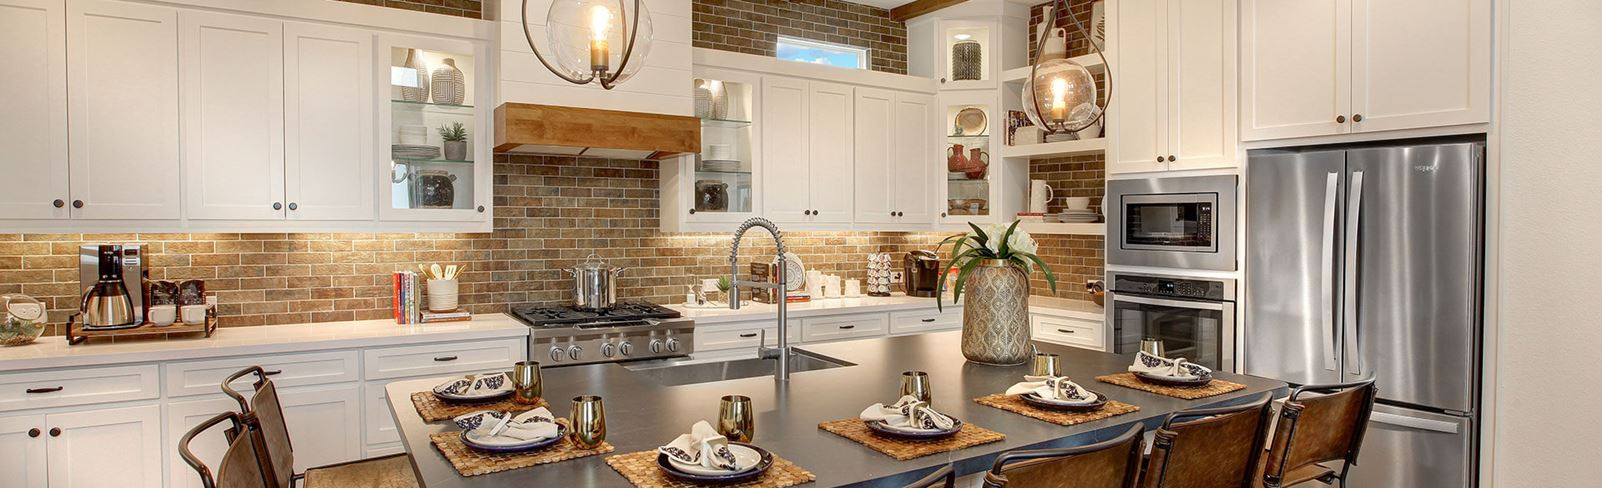 Model Home Kitchen by Drees Custom Homes at The Grove Frisco